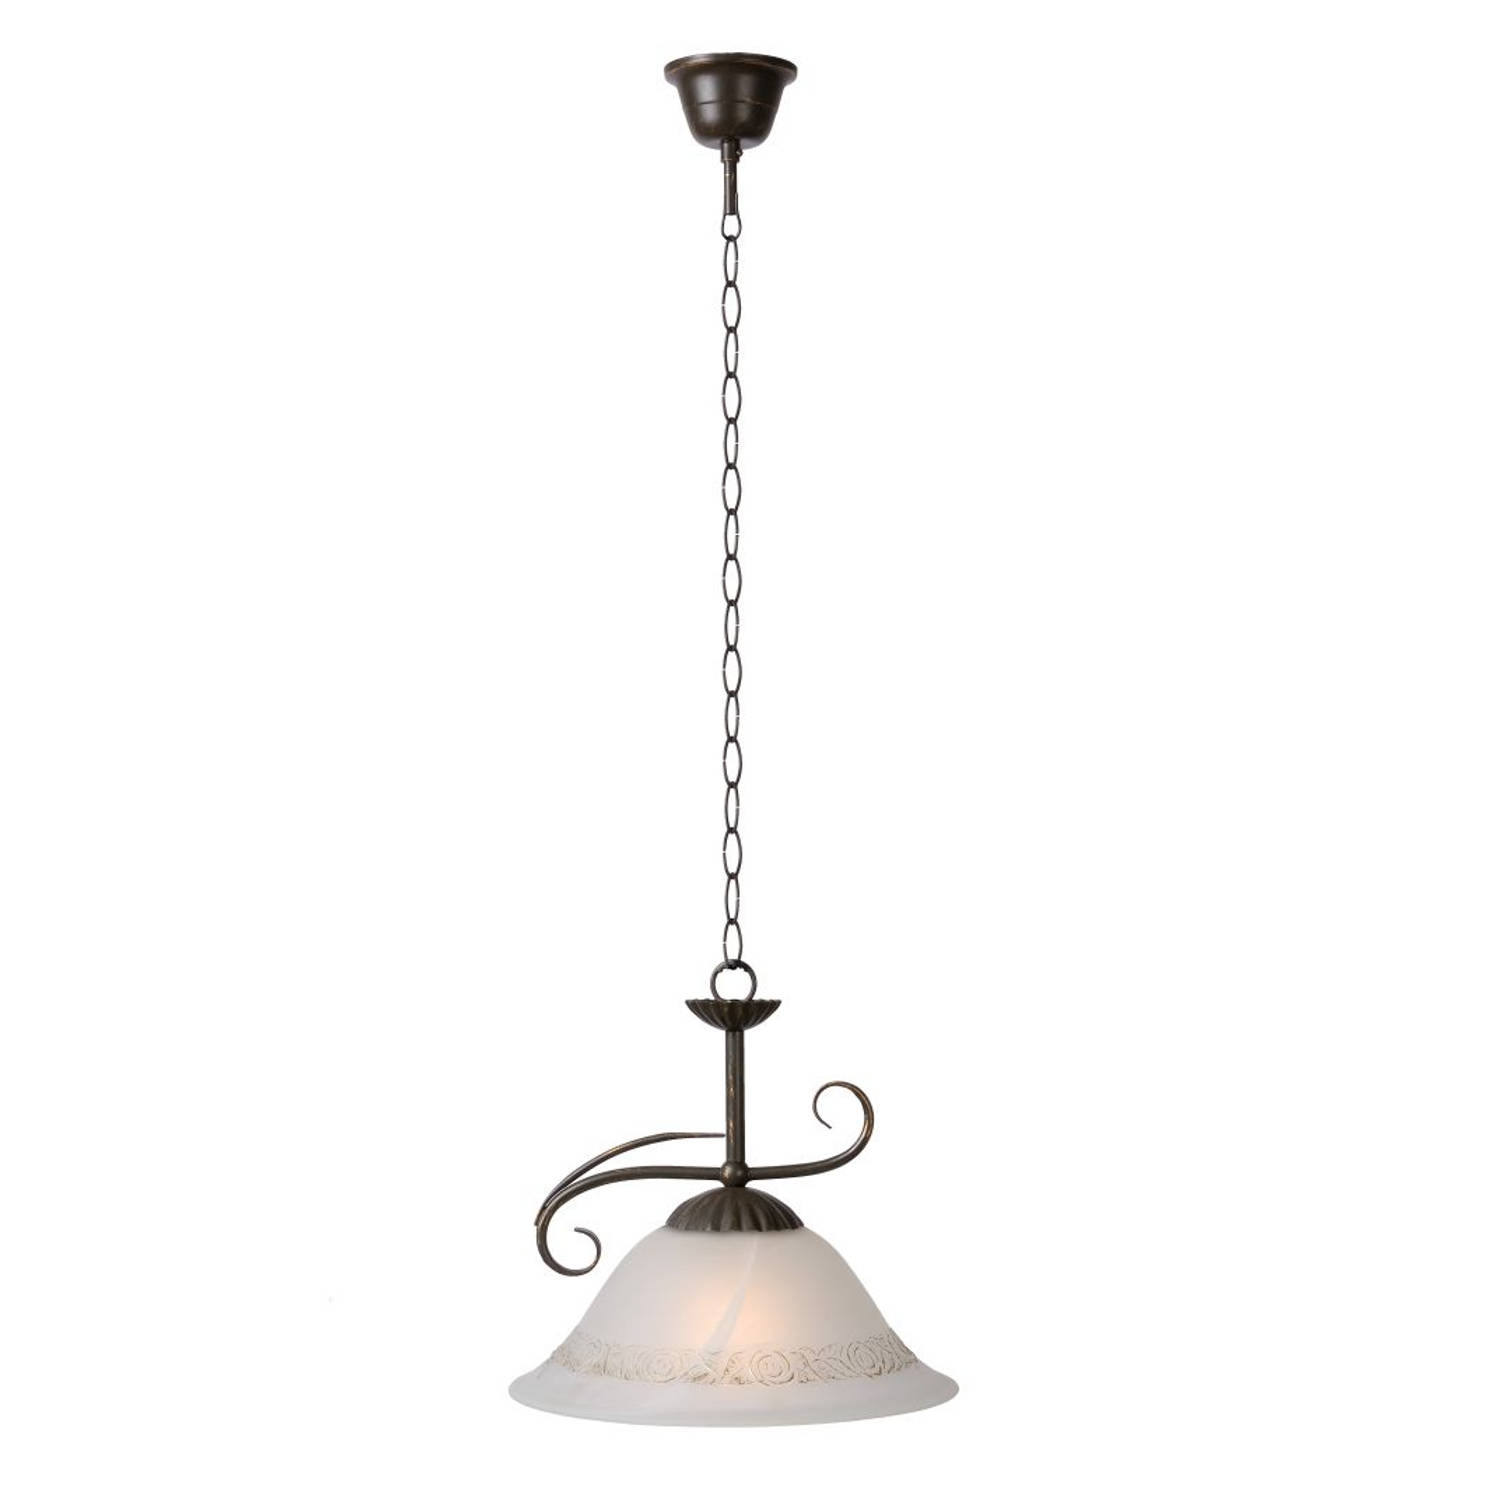 Lucide CALABRE - Hanglamp - Roest bruin